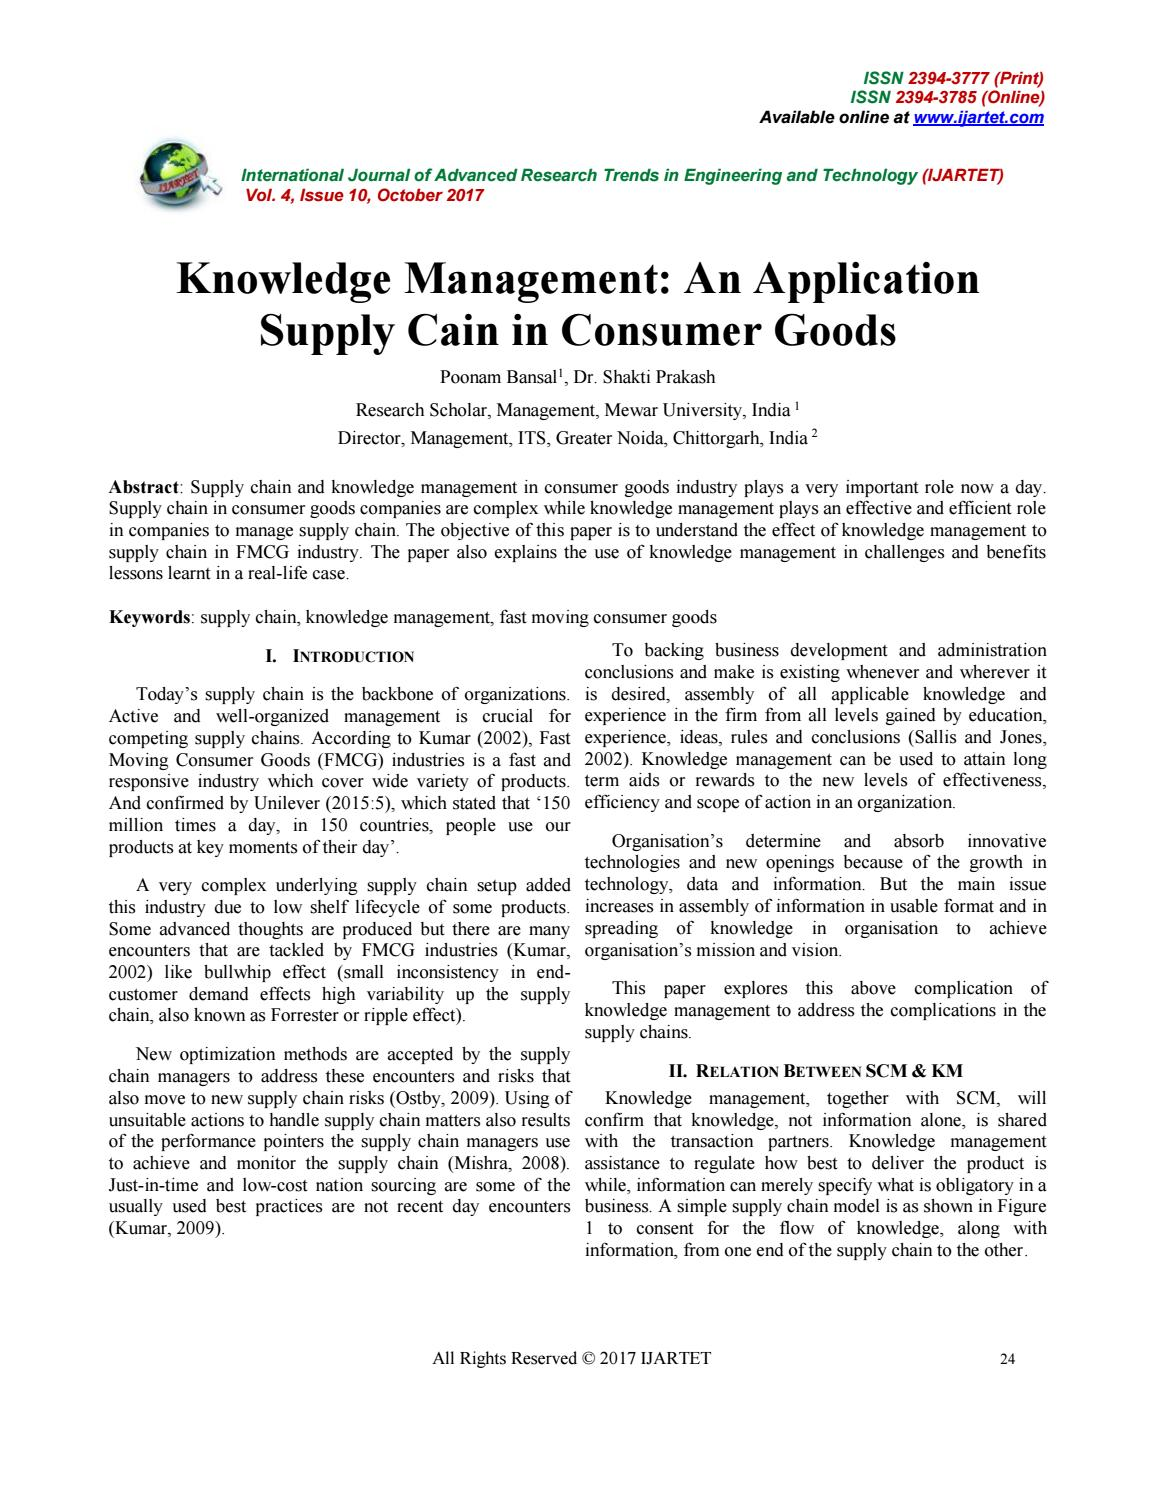 Knowledge management an application by IJARTET - issuu